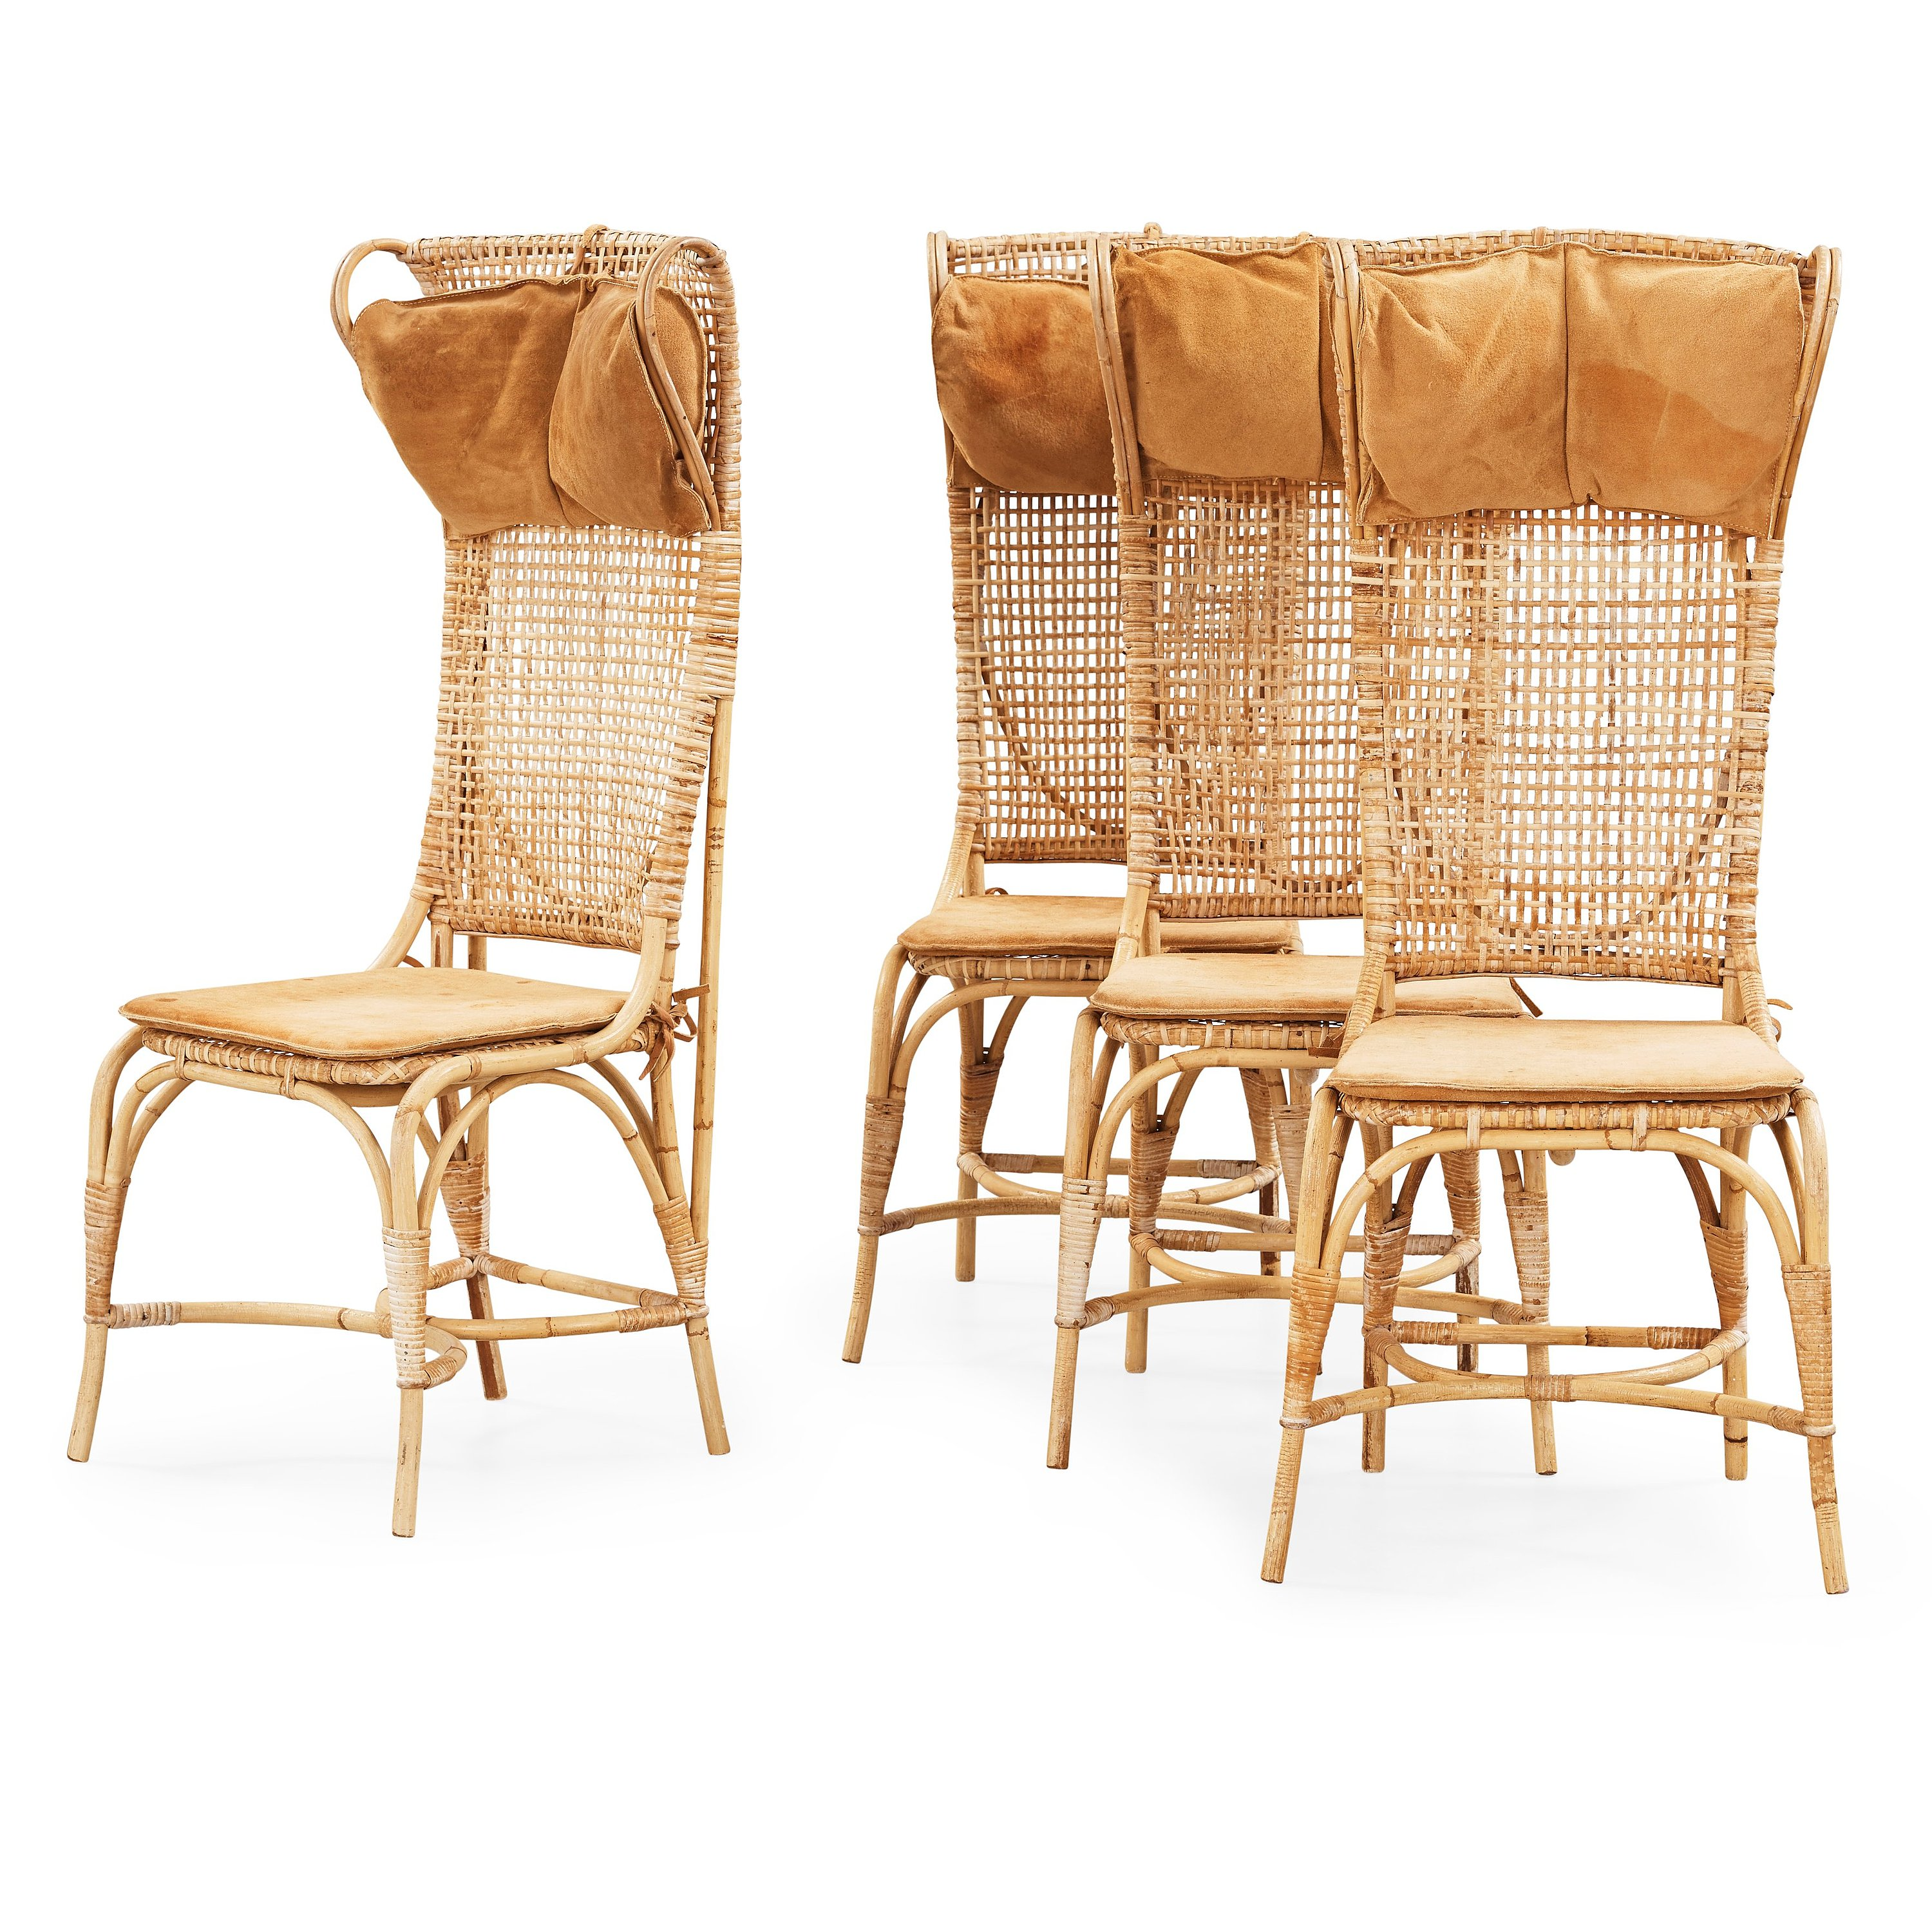 rattan umbrella models table max chair model and with outdoor set obj furniture chairs